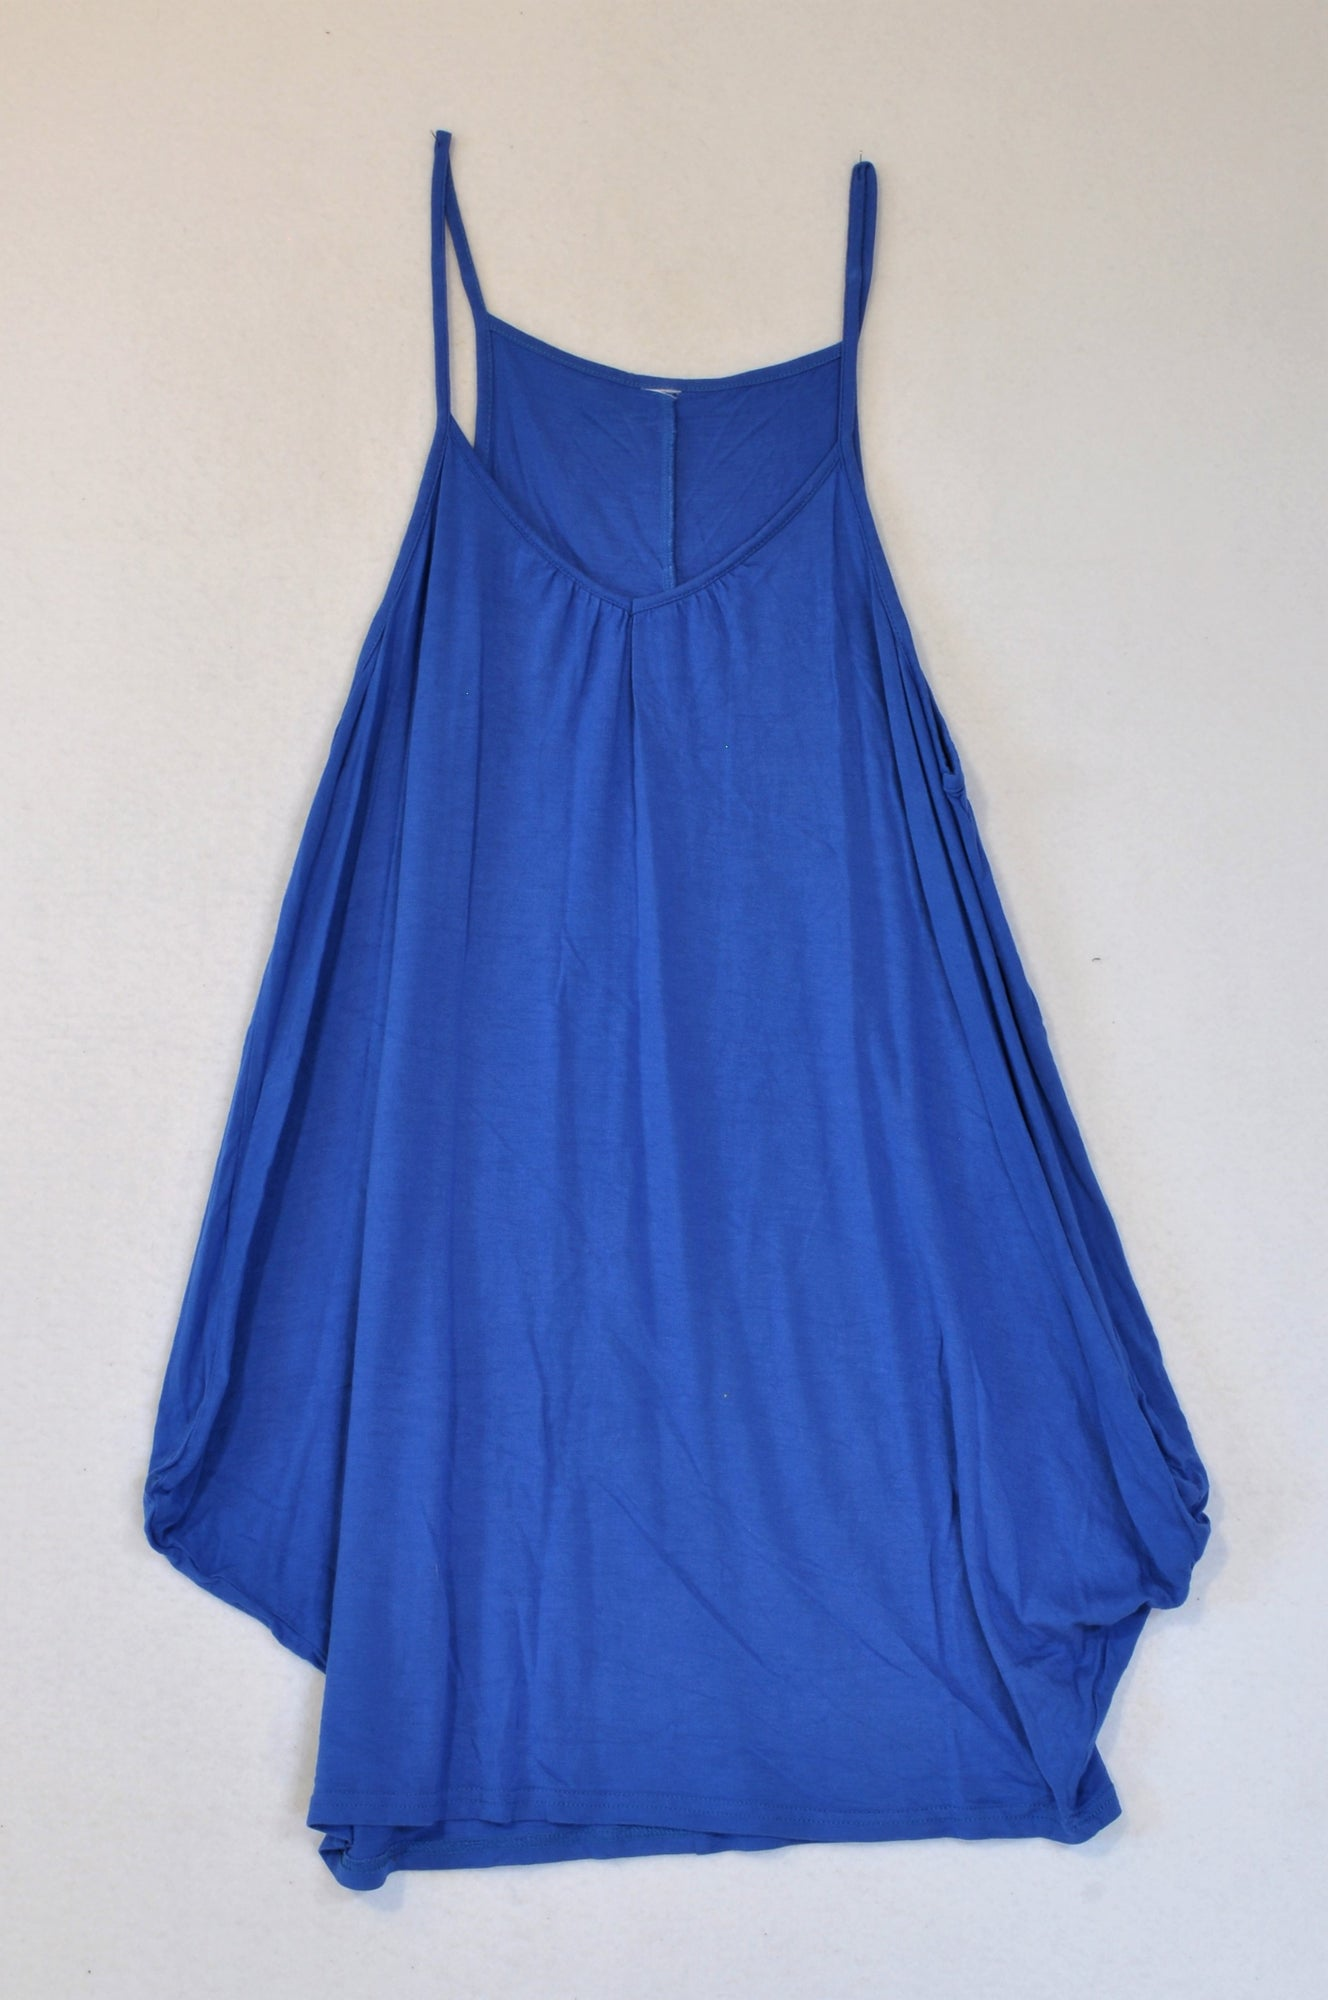 Mr. Price Blue Slouchy Dress Women Size S